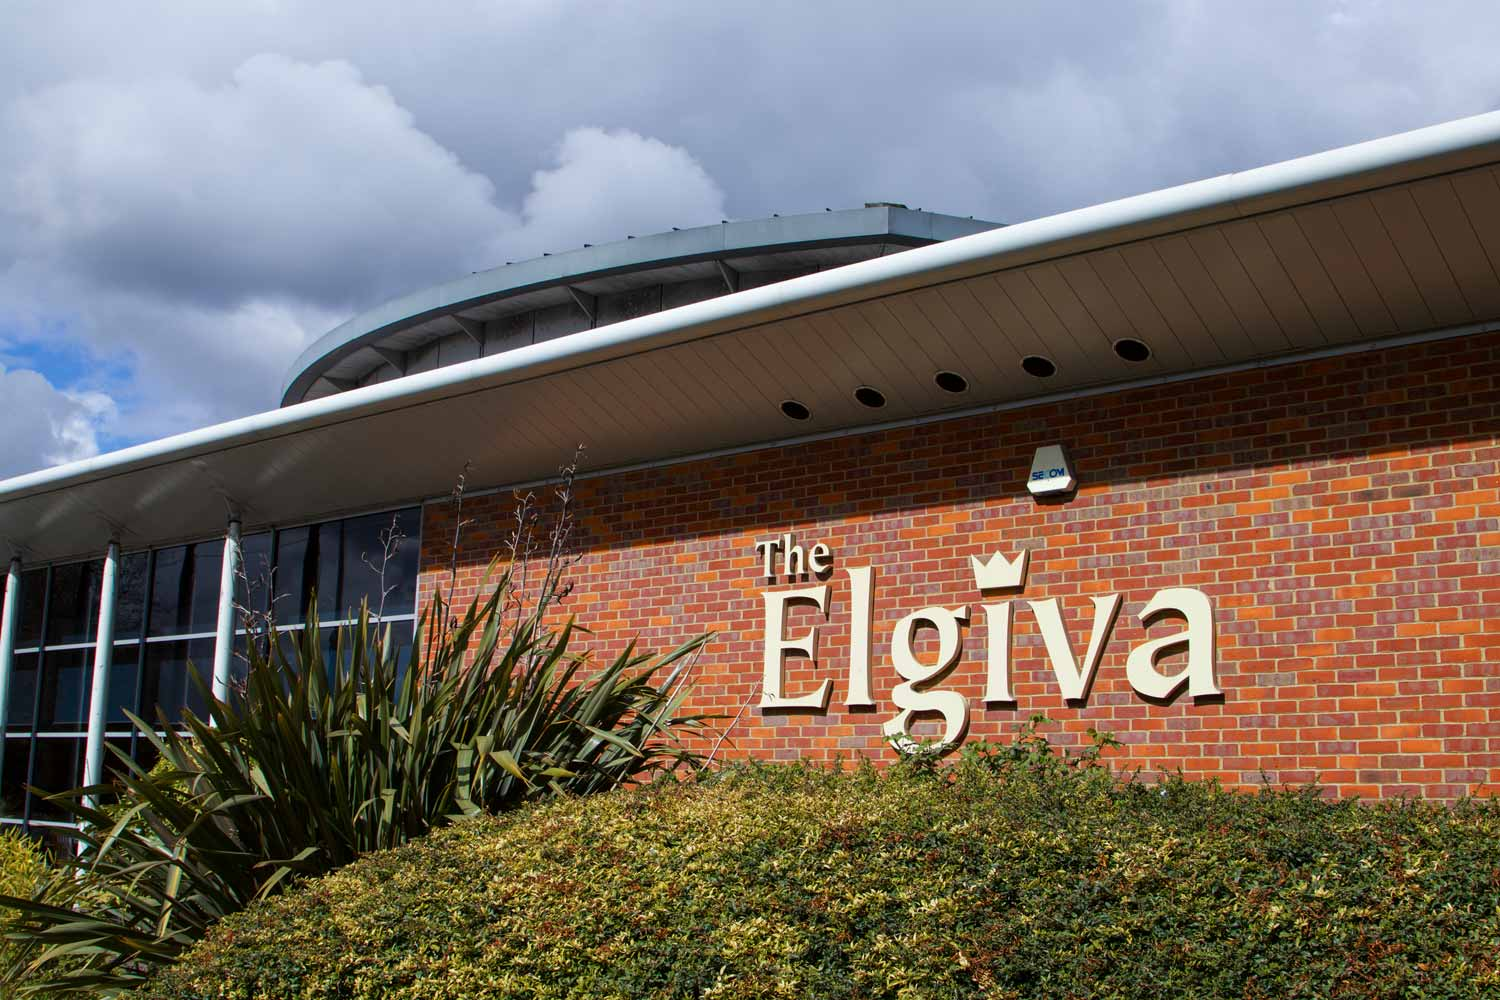 The Elgiva Theatre frontage